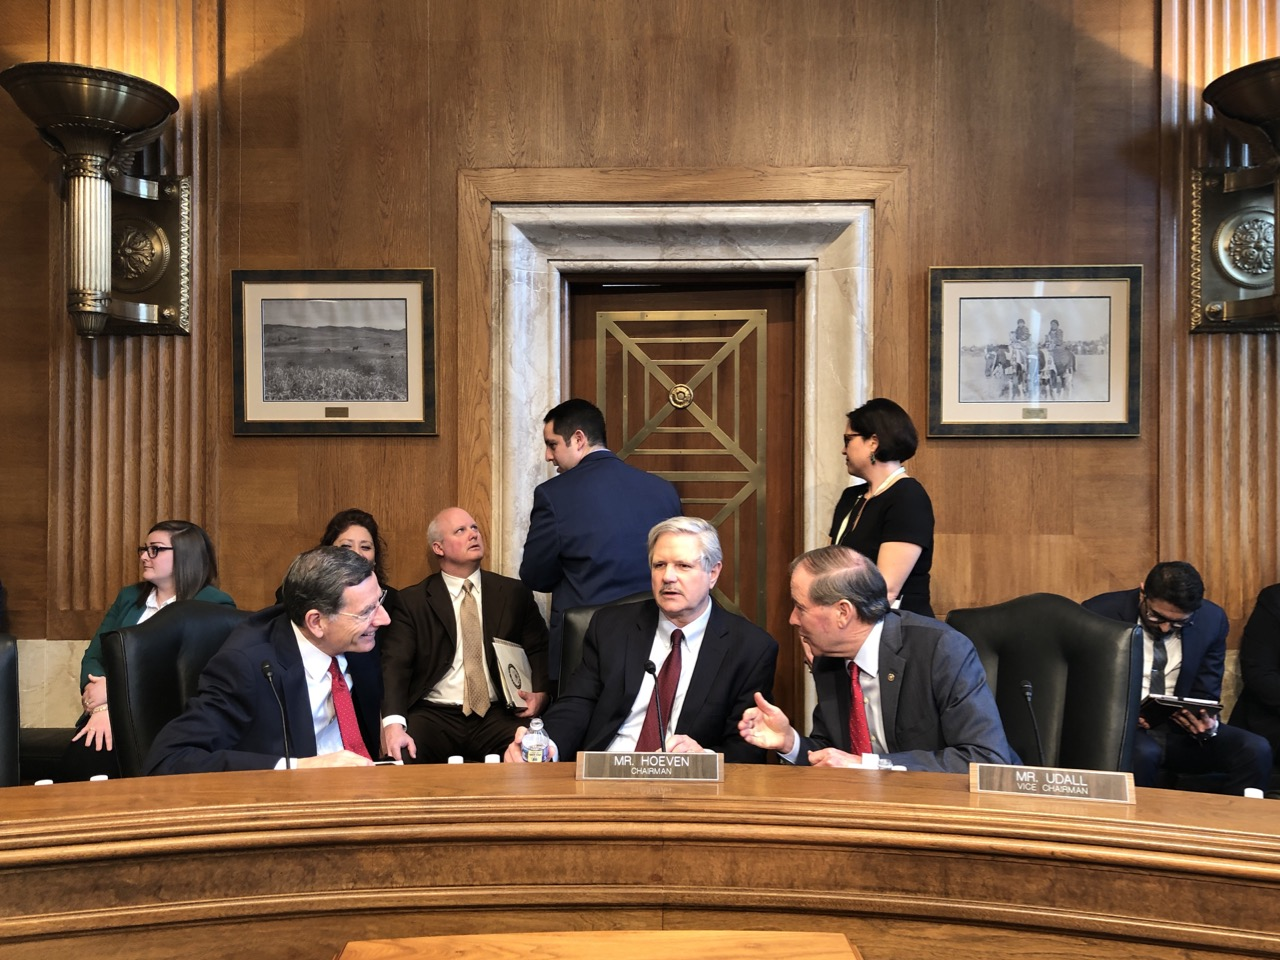 Senate Committee on Indian Affairs advances more legislation in troubled climate